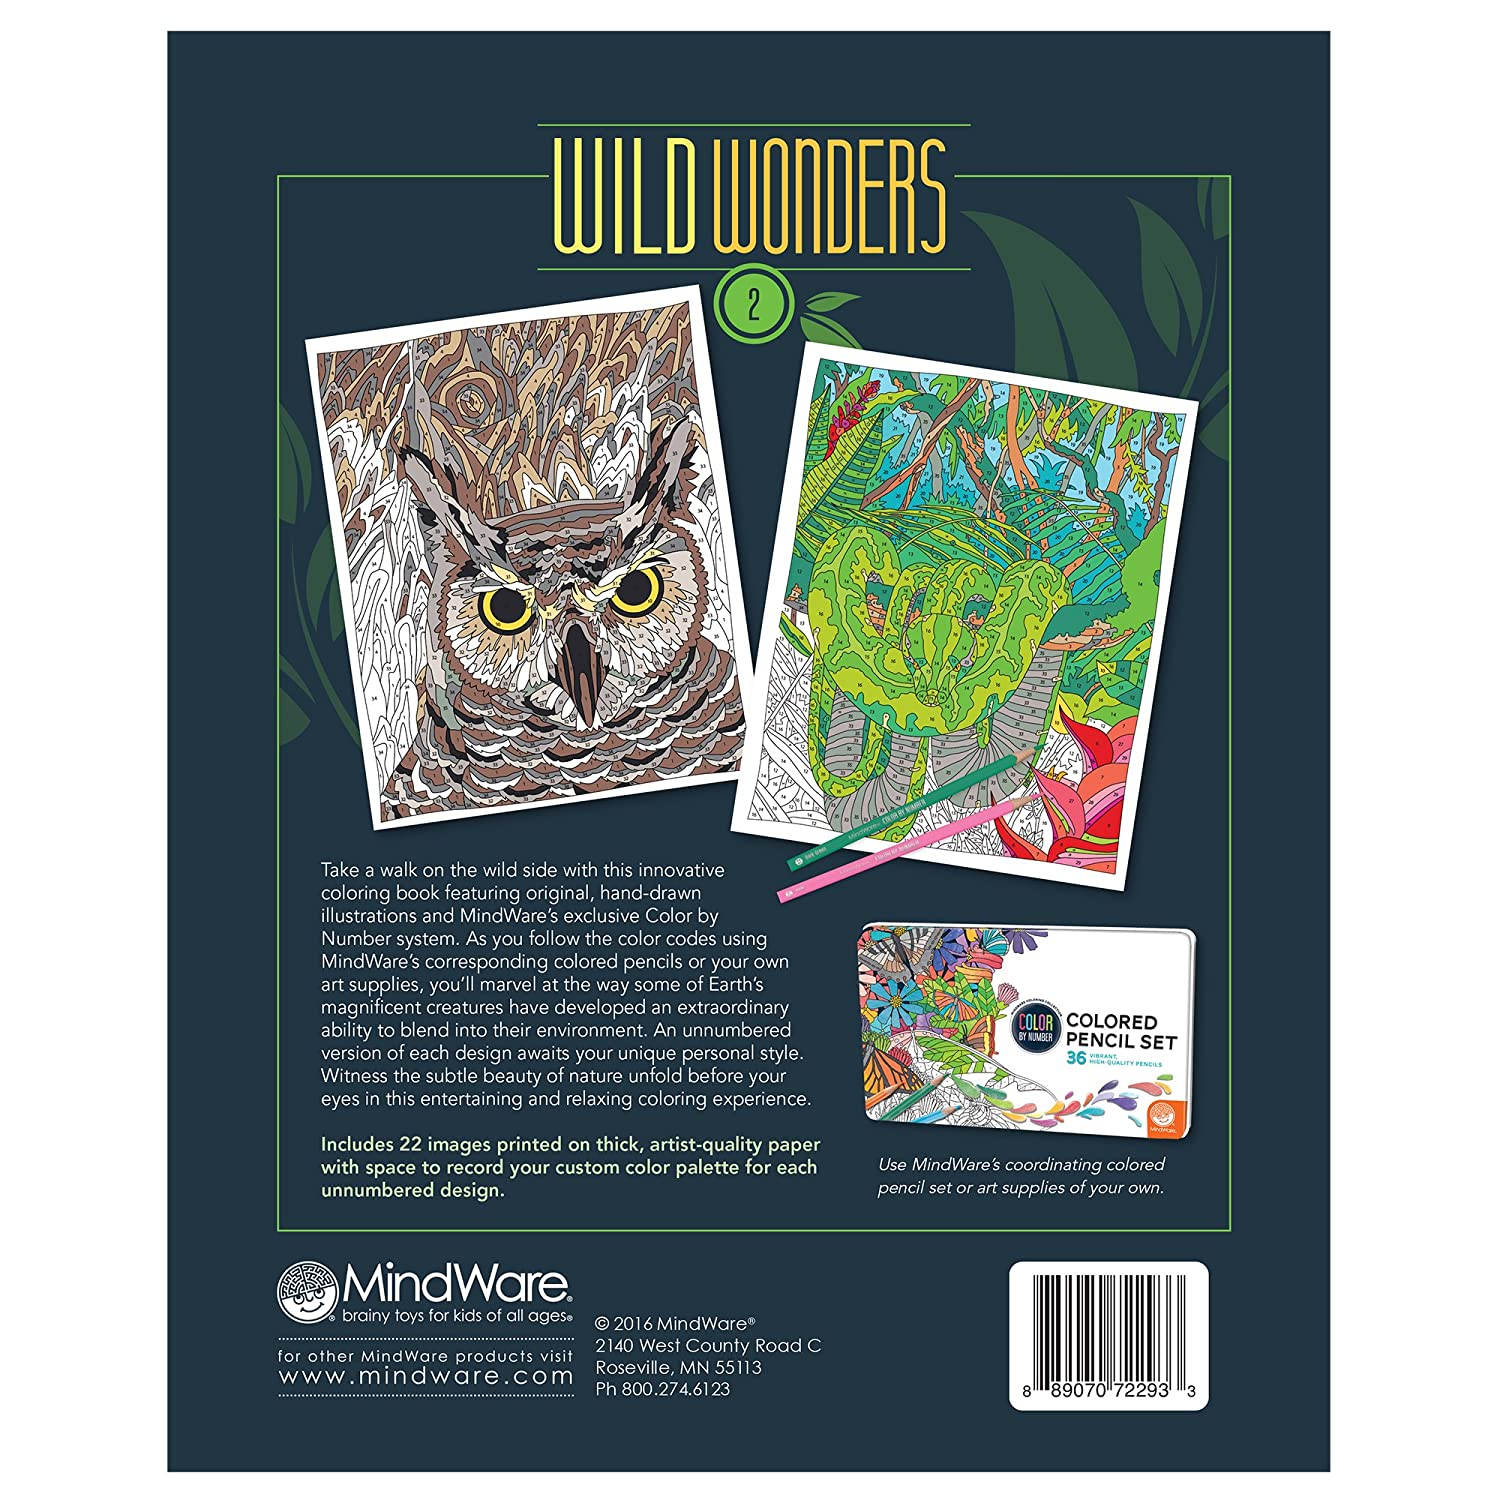 Amazon.com: Wild Wonders Color by Number: Book 2: Toys & Games